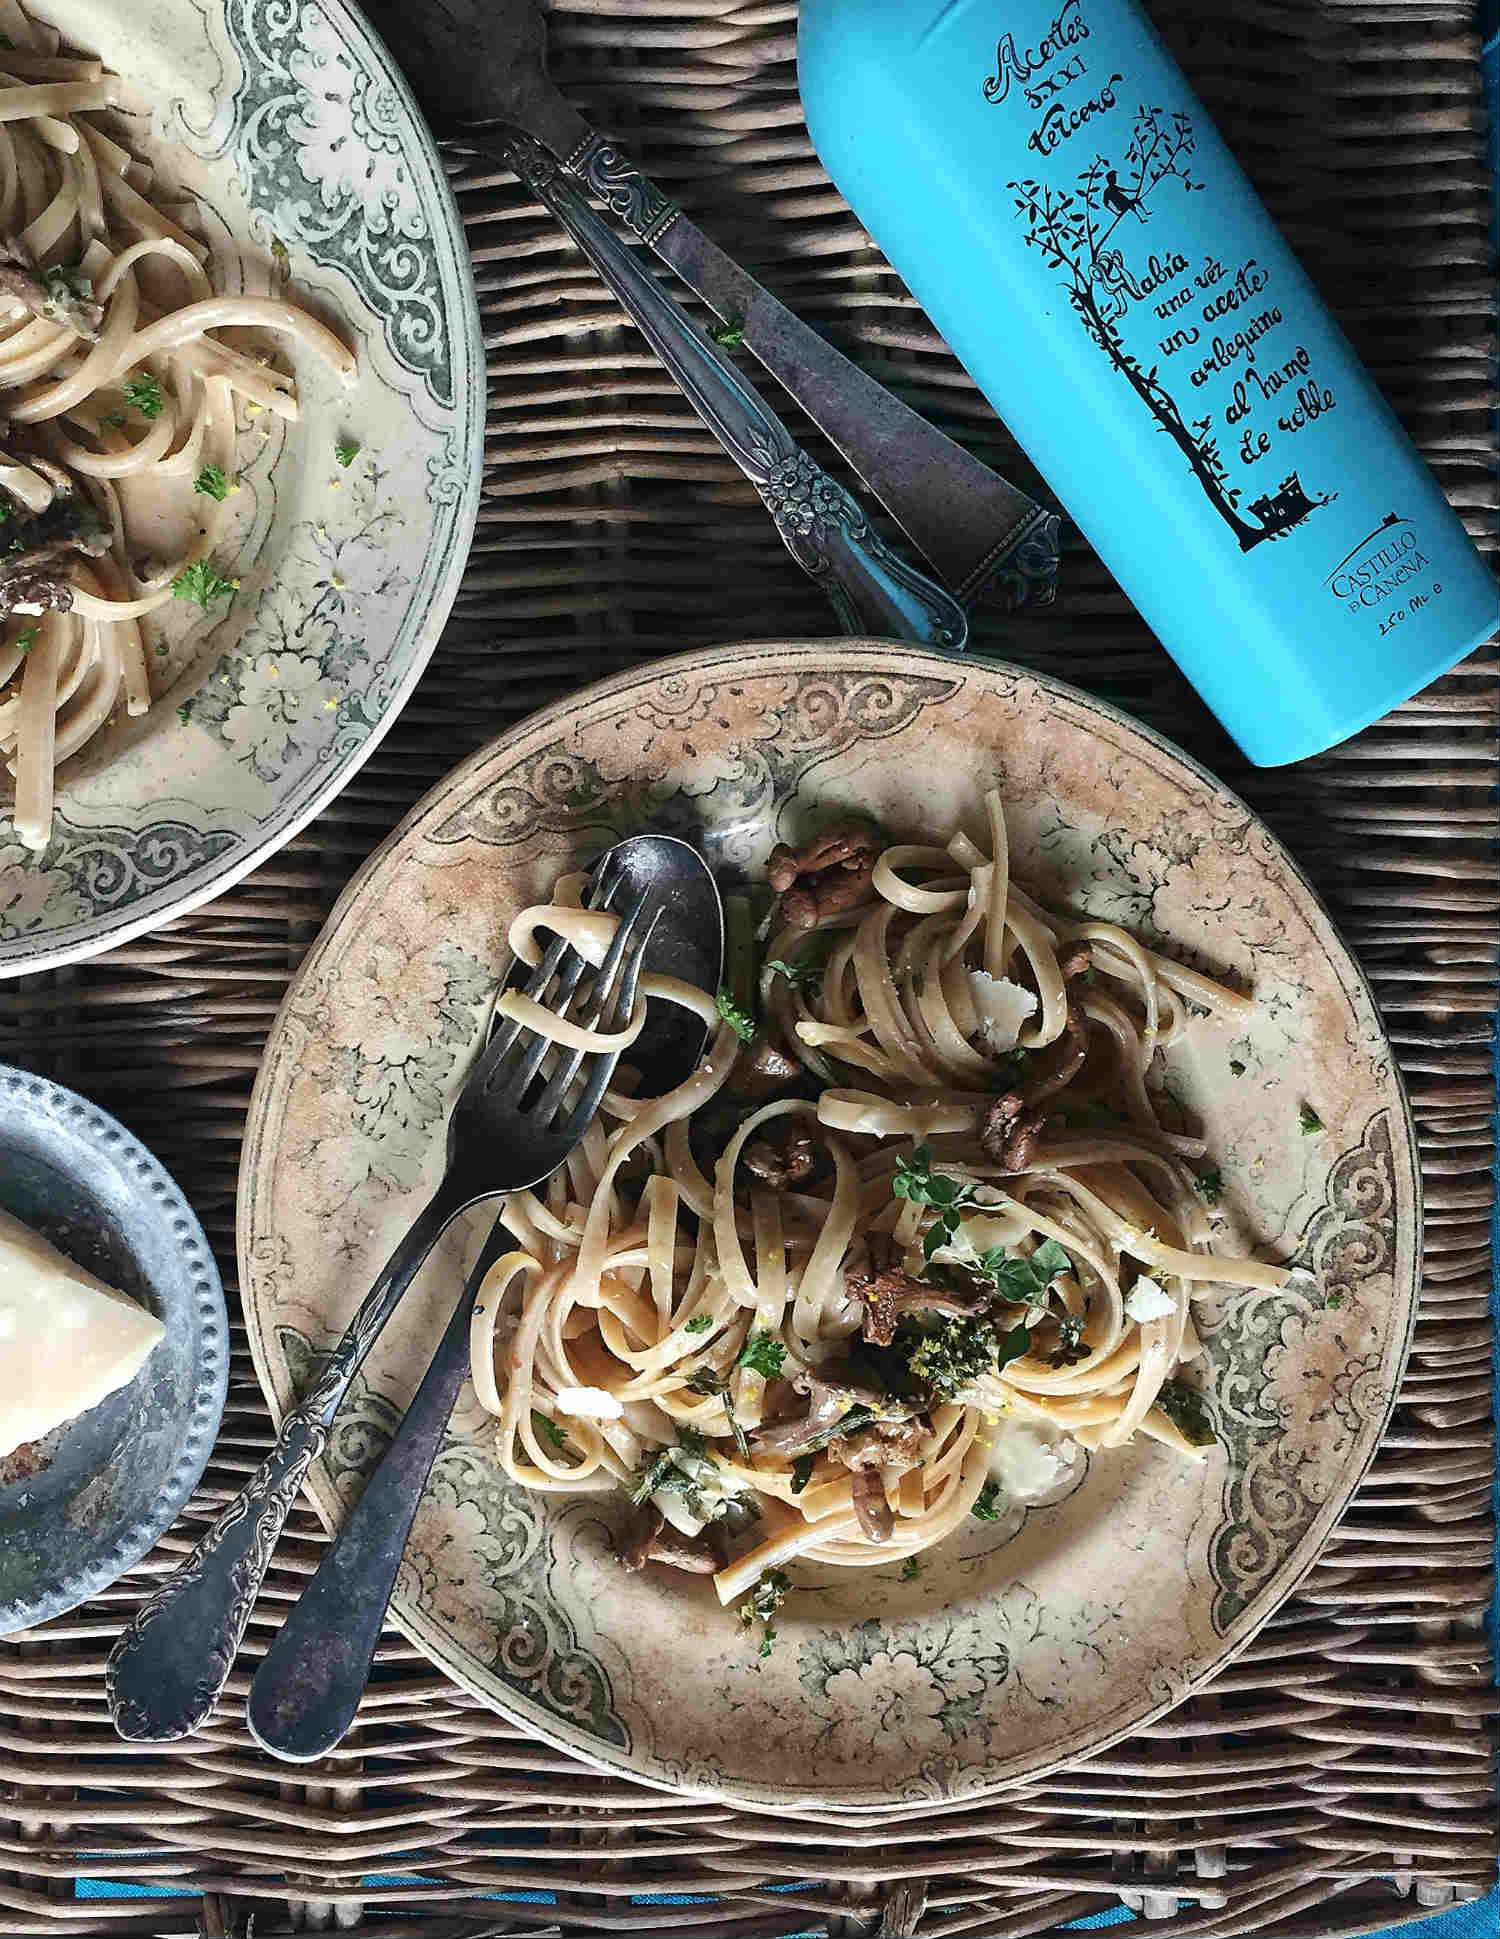 Whole Wheat Linguine with Mushroom & Parmesan Cheese